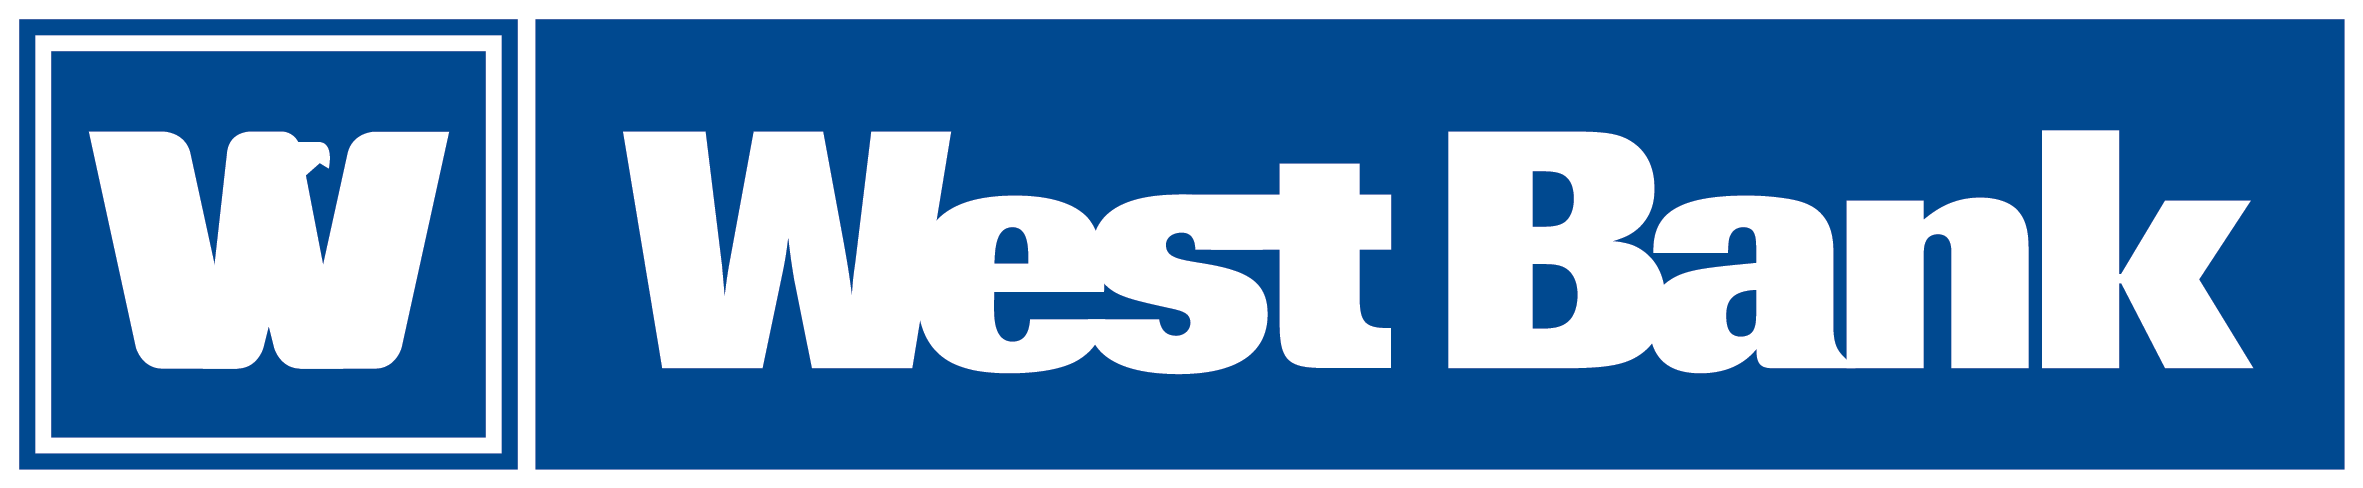 WestBank_logo_Color_NoTagline